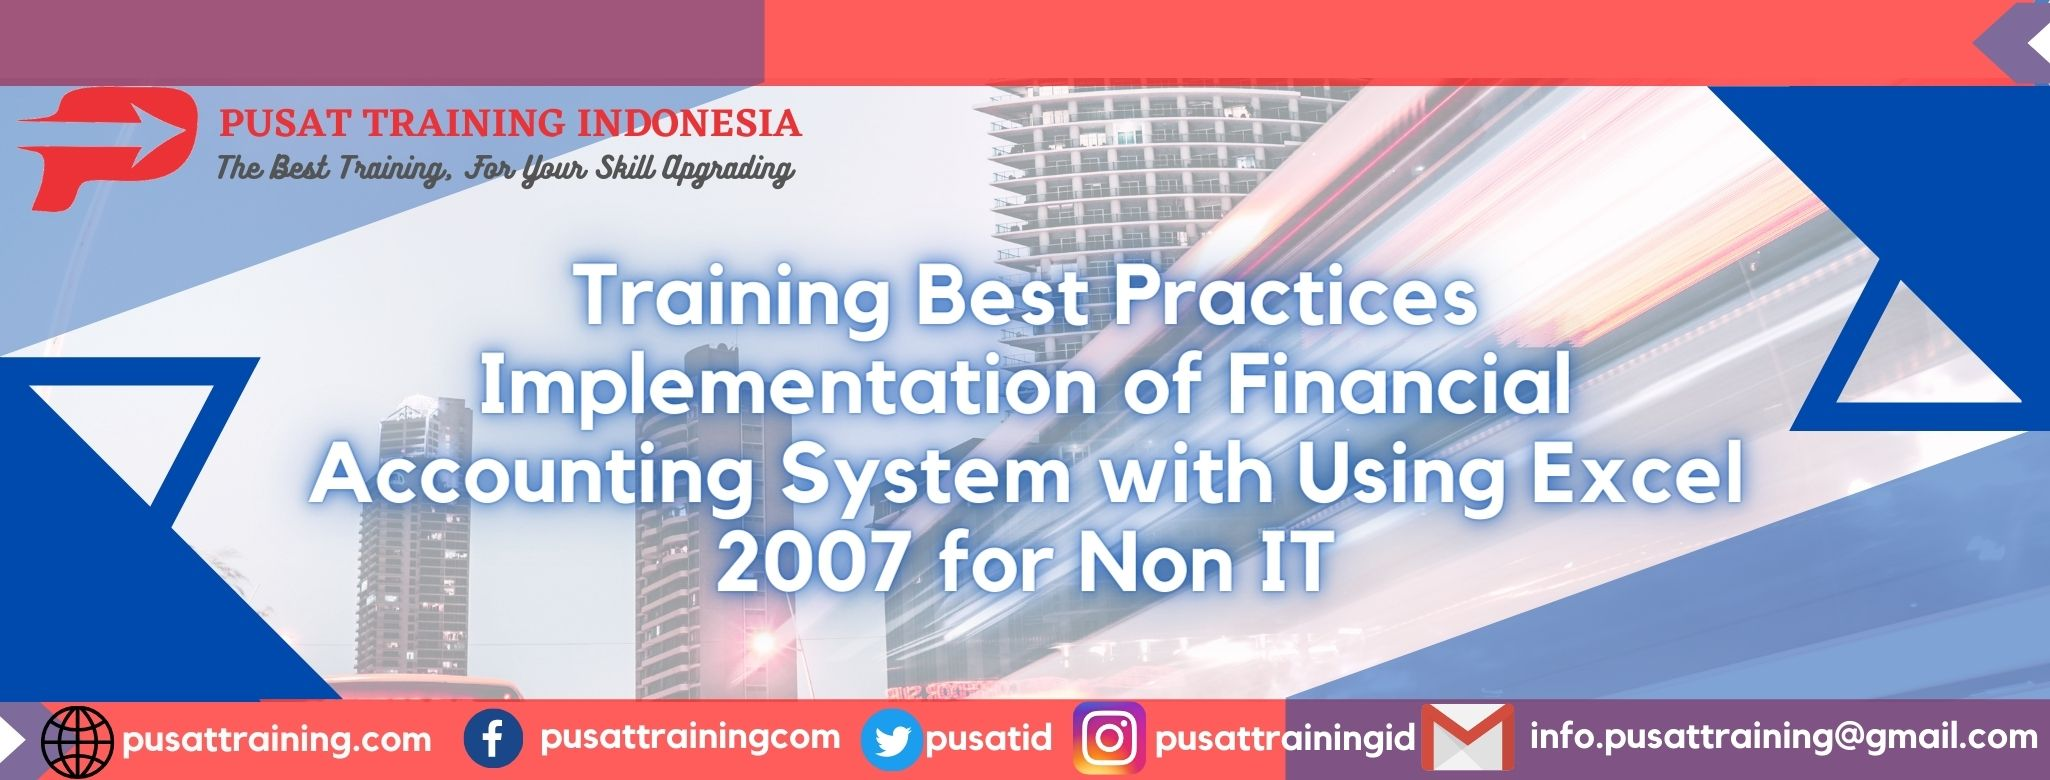 Training-Best-Practices-Implementation-of-Financial-Accounting-System-with-Using-Excel-2007-for-Non-IT.j